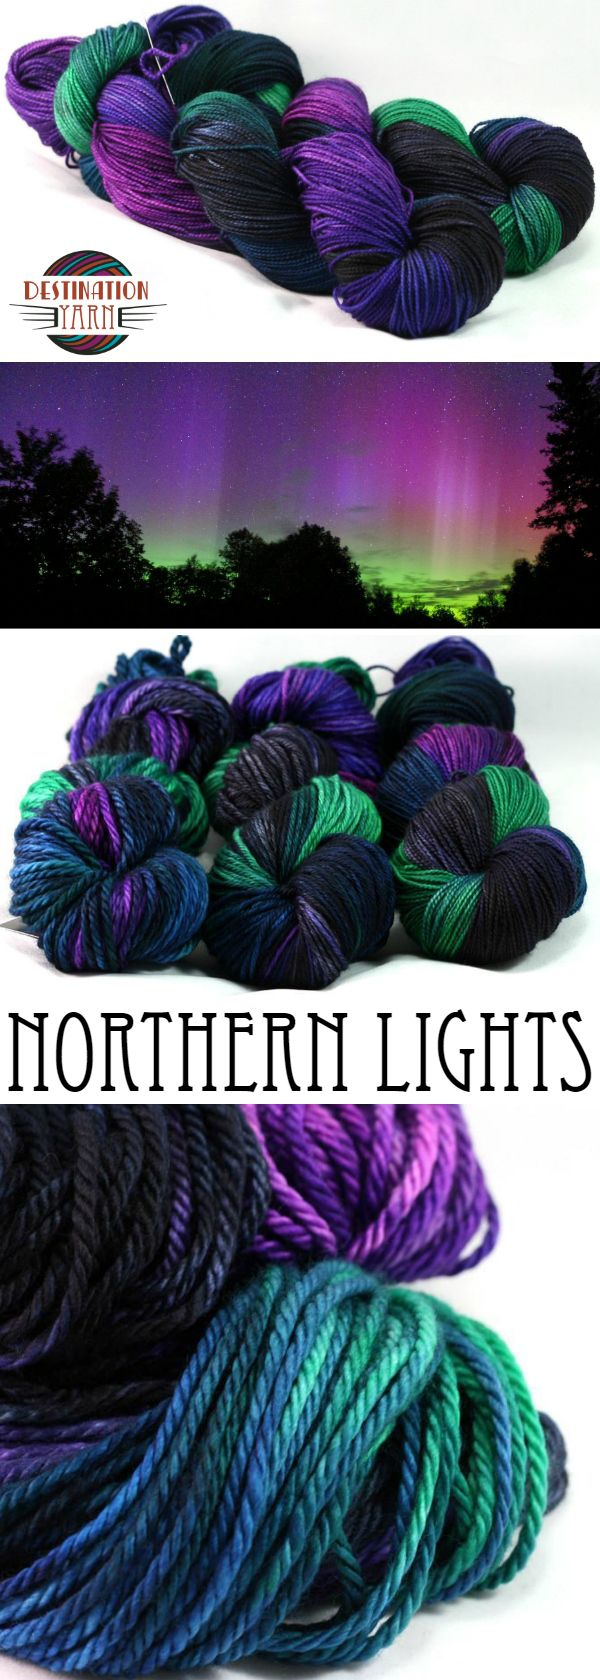 Saturated jewel tones beginning with black with pops of navy, eerie green, and purples make this skein glow with vibrant hues! Hand-dyed, bulky yarn for knitting, crochet, and DIY crafts!